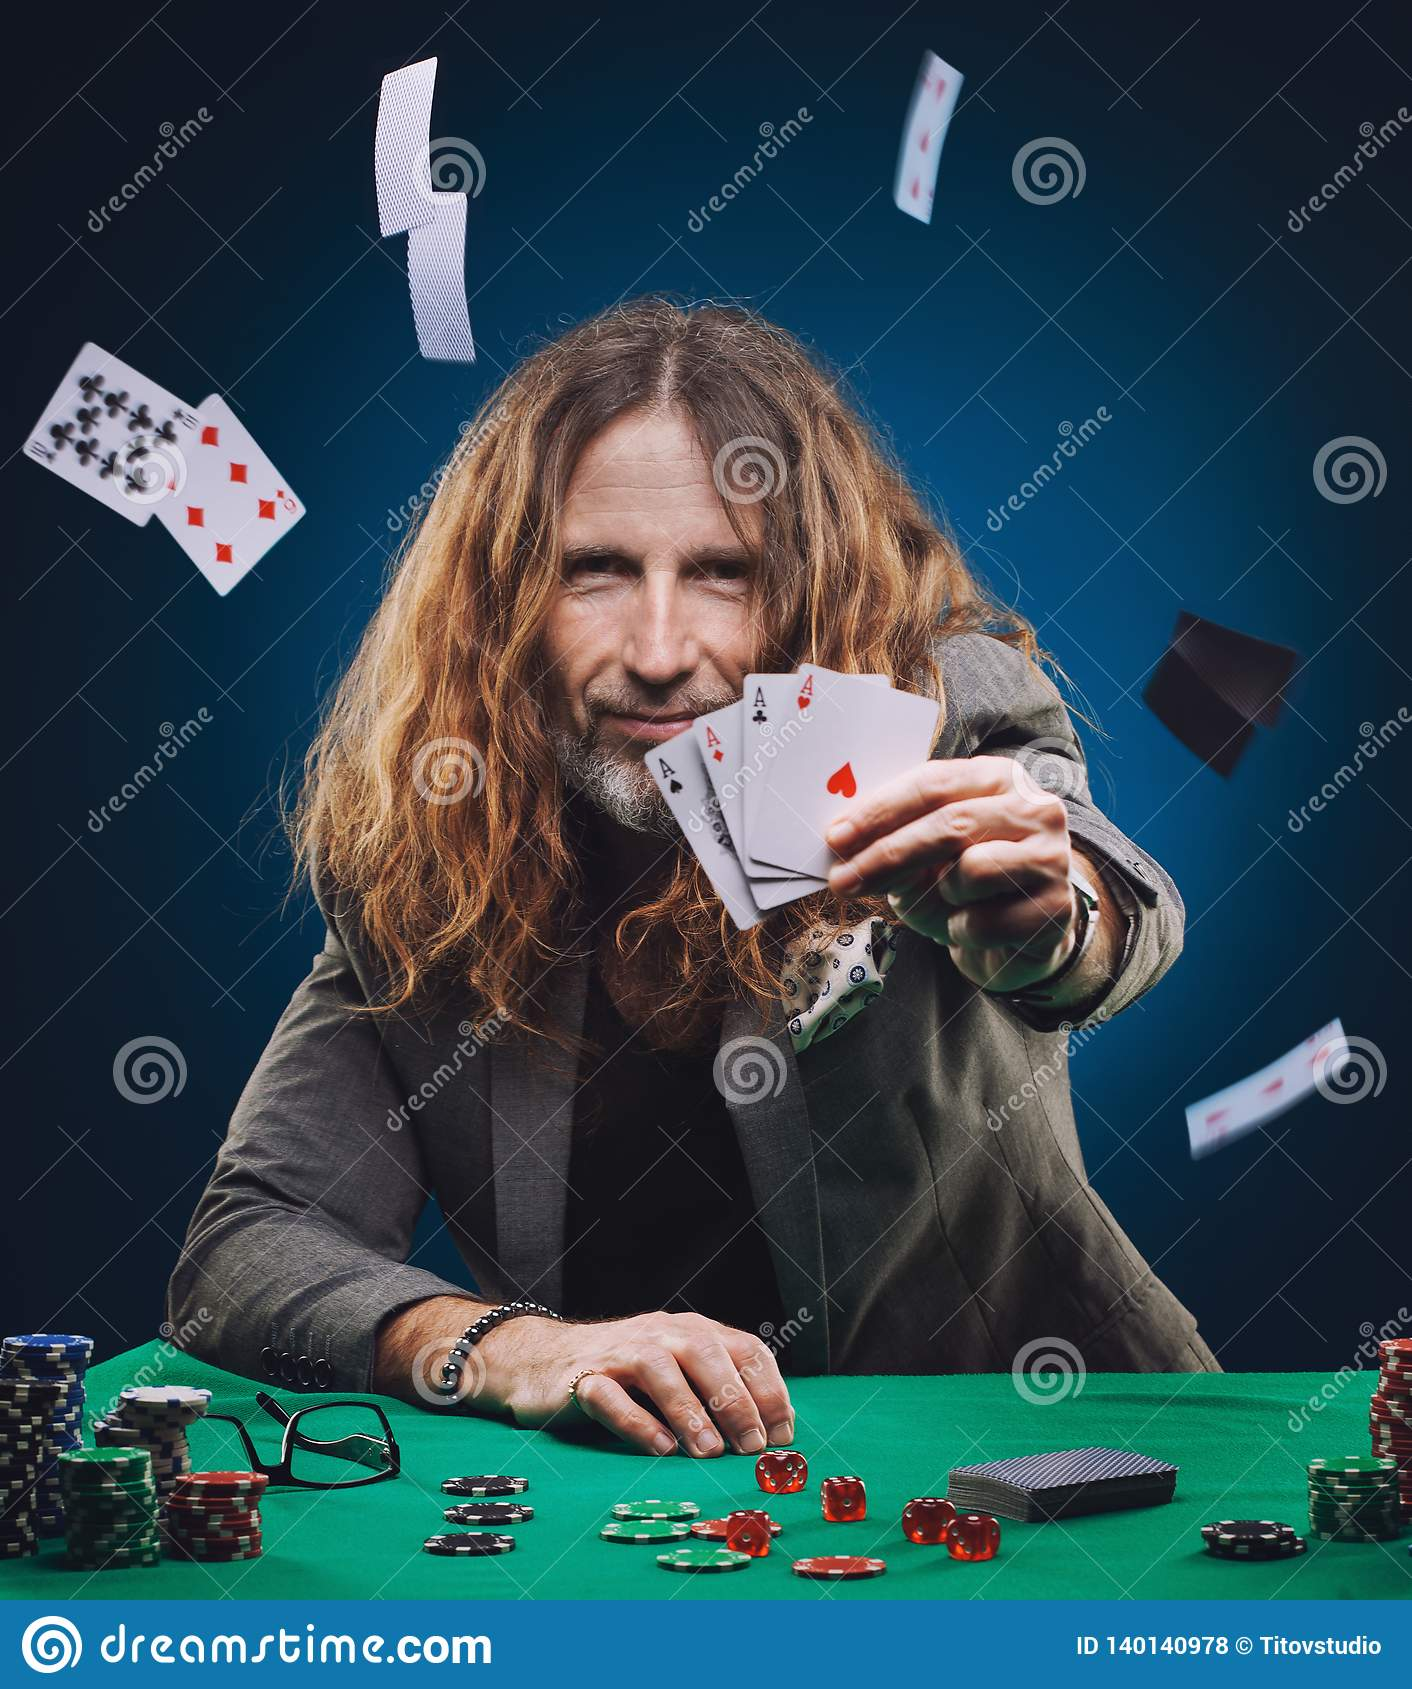 Long Haired Handsome Man Playing Poker In A Casino Stock Photo Image Of Handsome Portrait 140140978